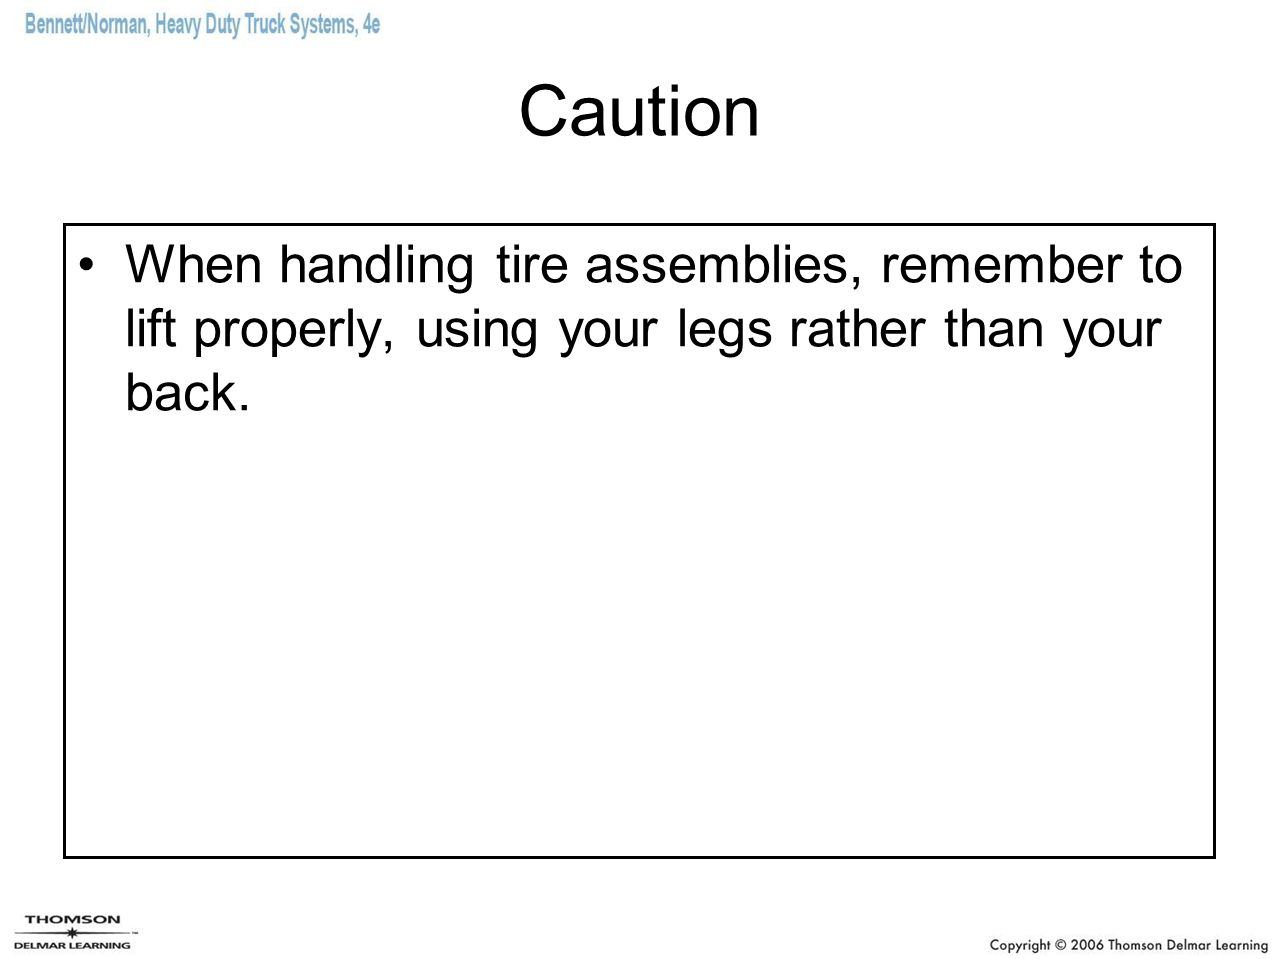 Caution When handling tire assemblies, remember to lift properly, using your legs rather than your back.